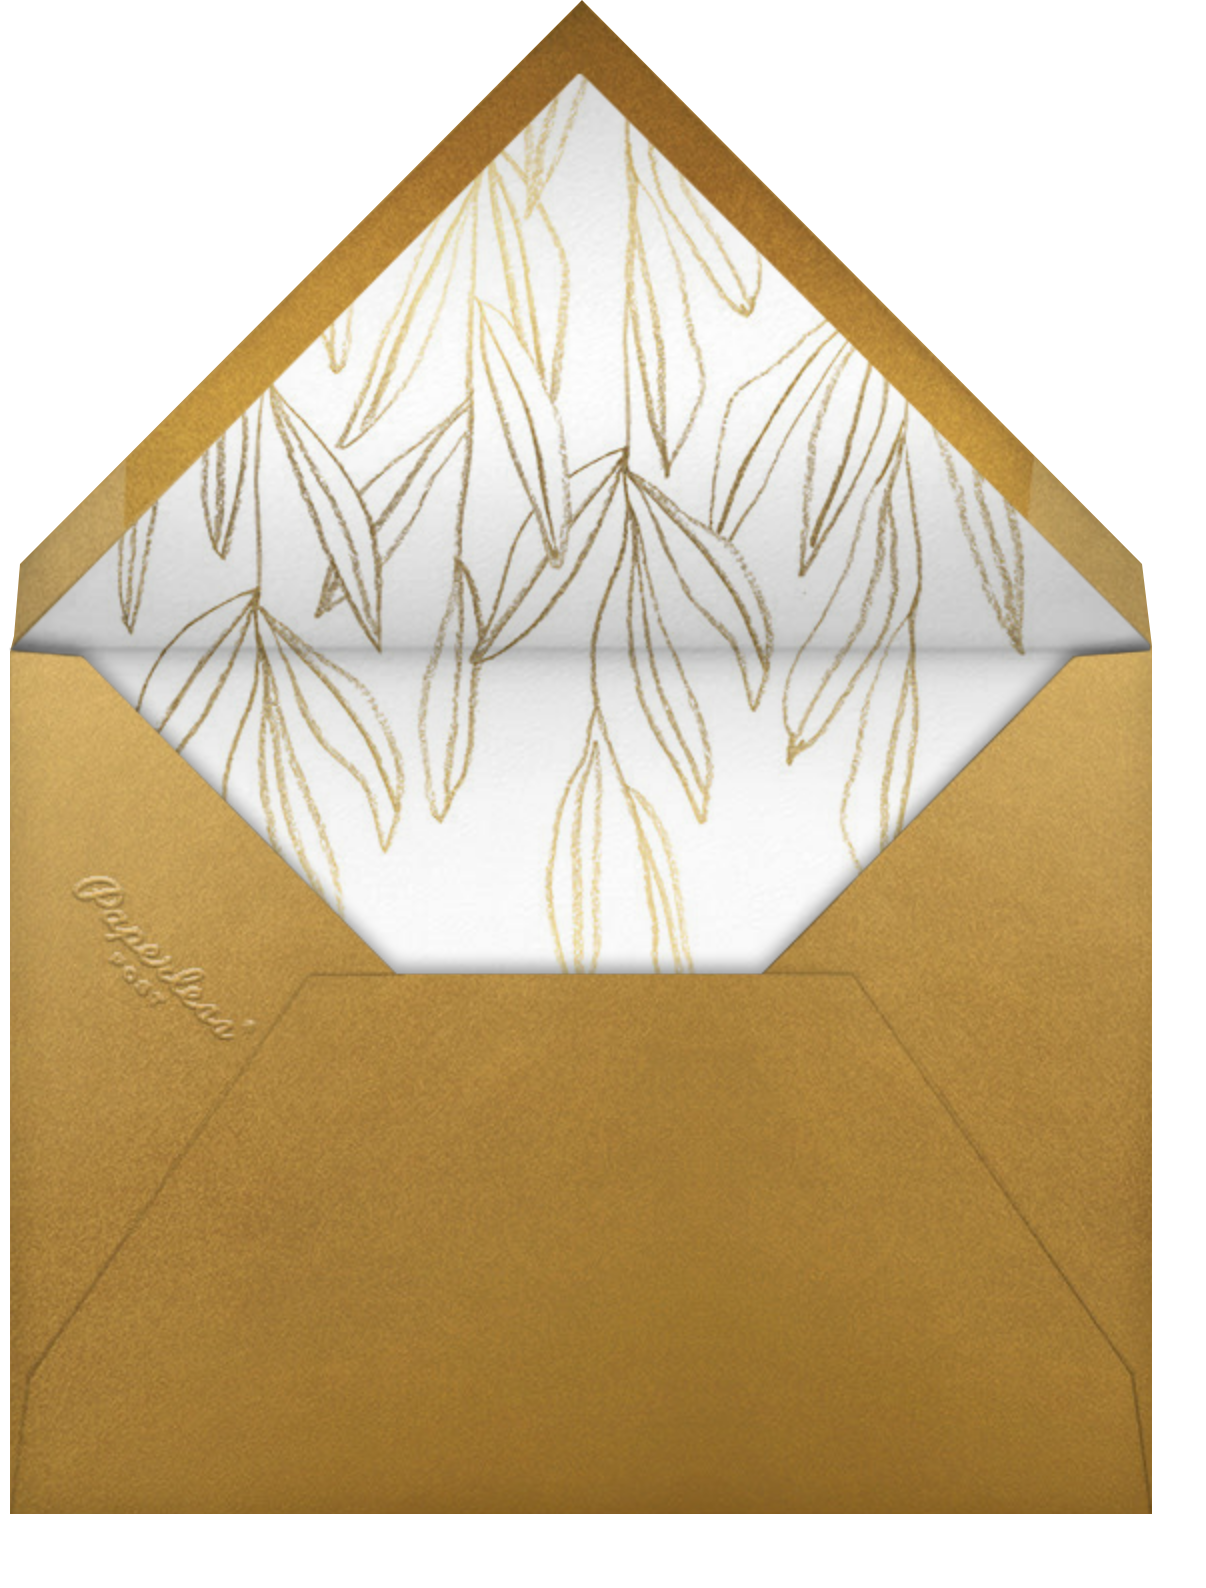 Aravah (Invitation) - Paperless Post - All - envelope back